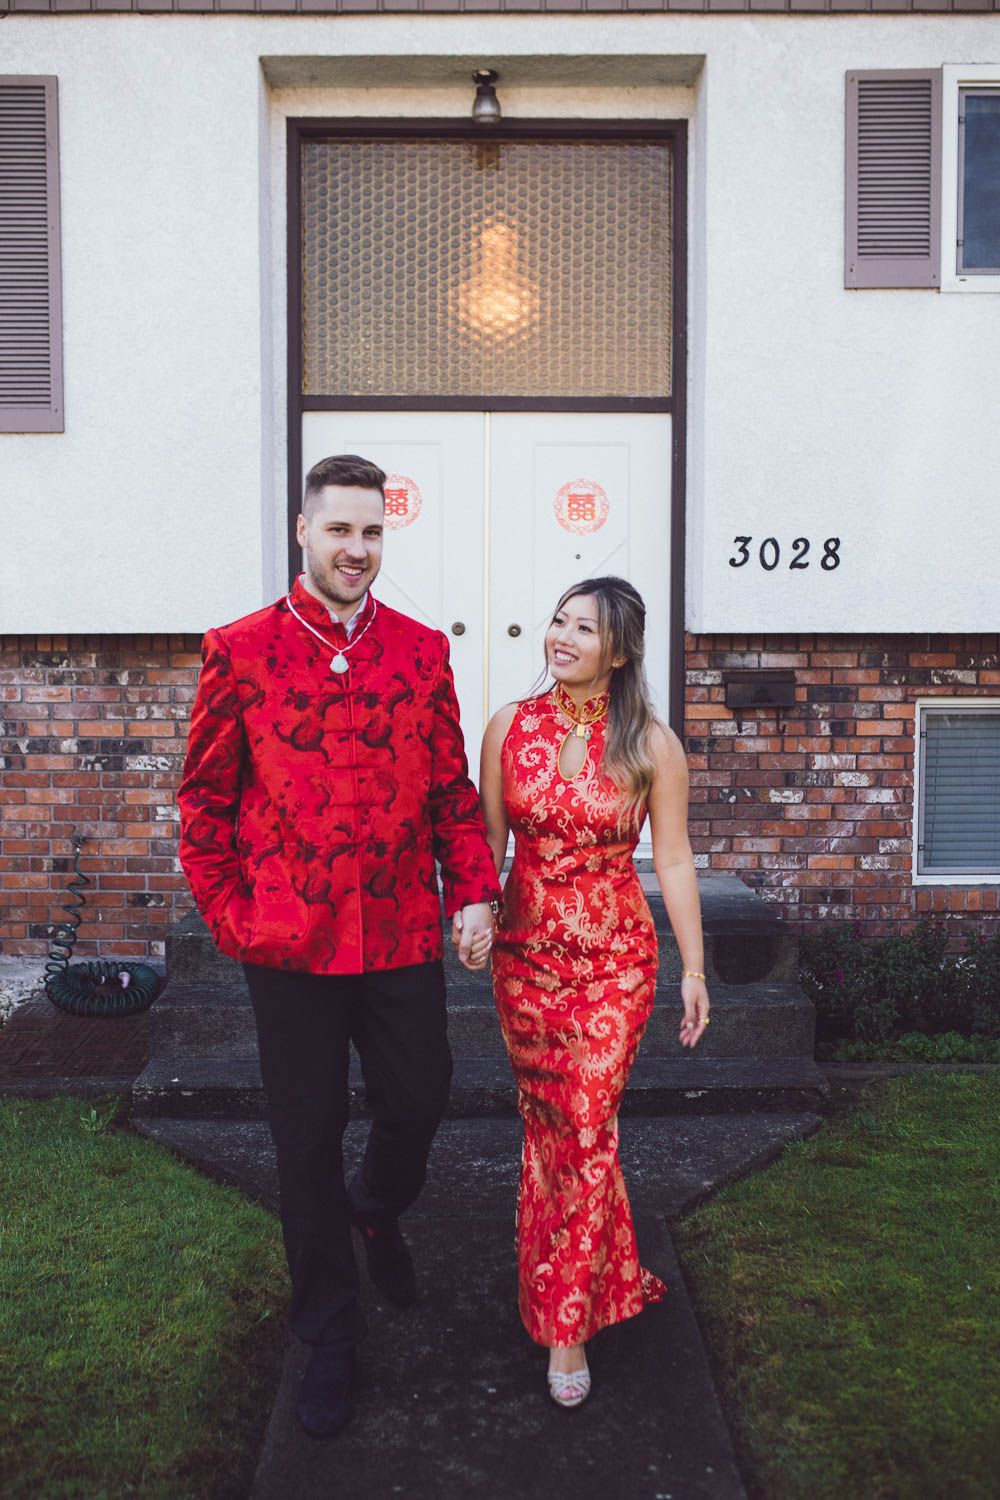 Couple Wearing Traditional Chinese Wedding Suit And Dress Chinese Wedding Dress Traditional Chinese Wedding Dress Chinese Style Wedding Dress